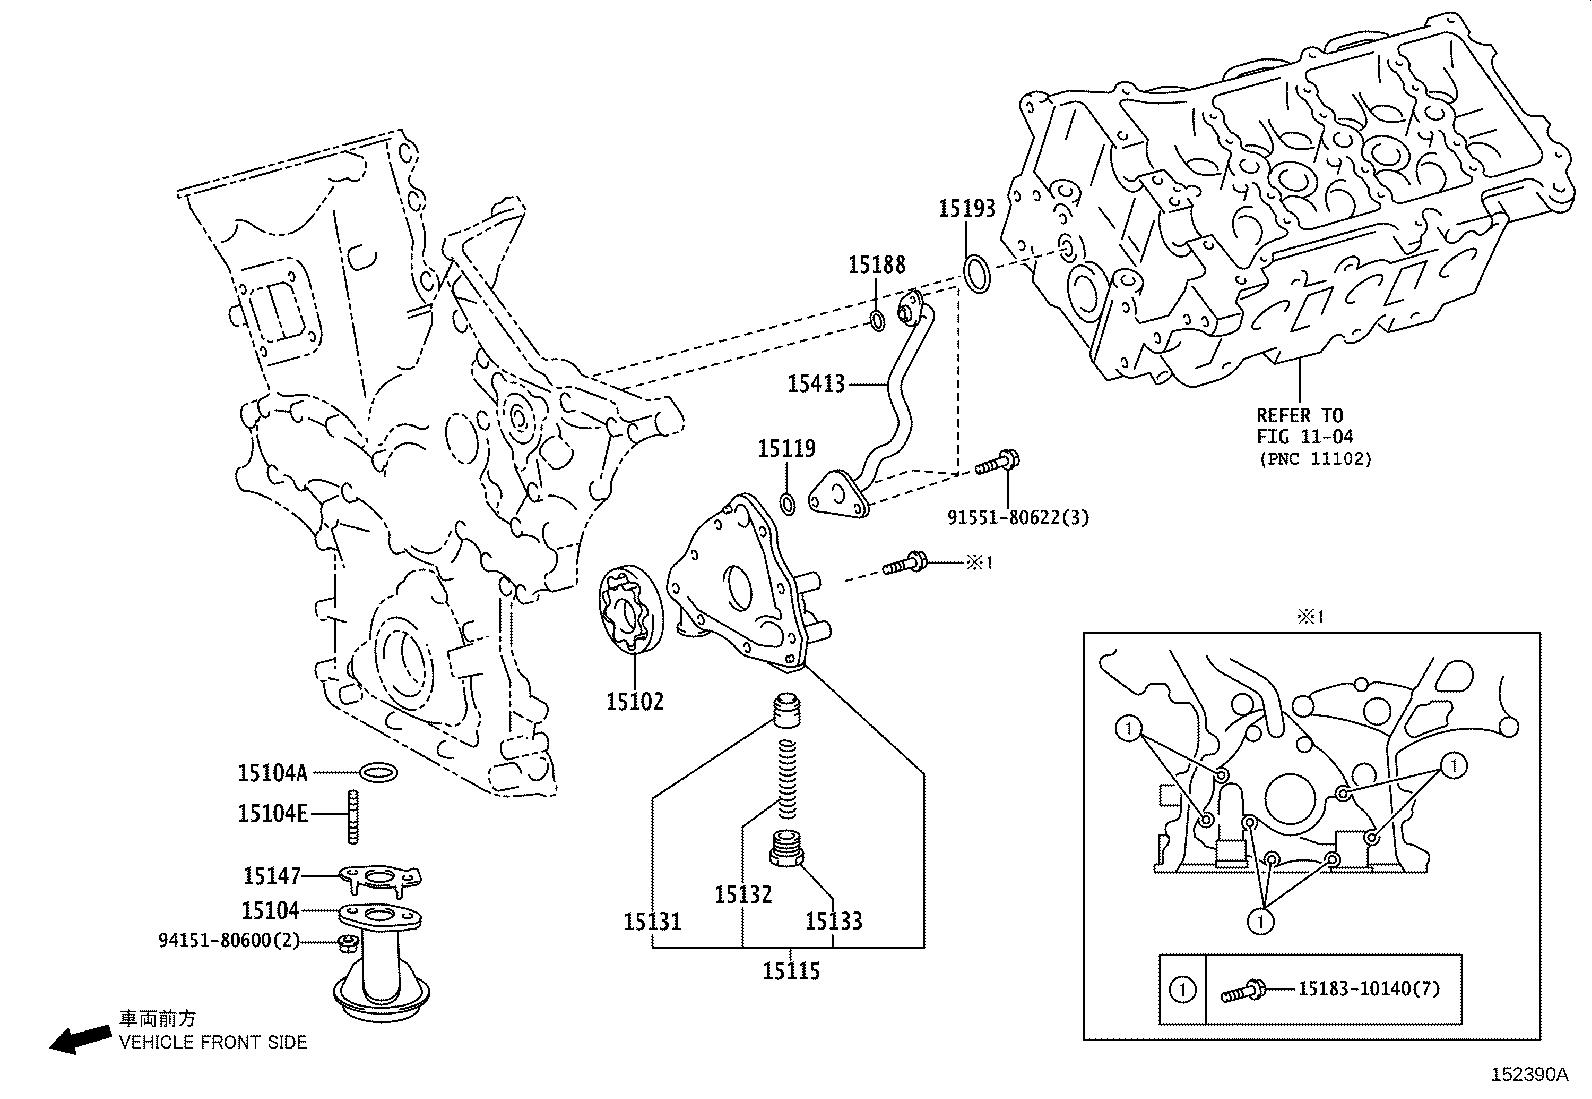 2004 Toyota 4 Runner Fuel Pump Wiring Diagram